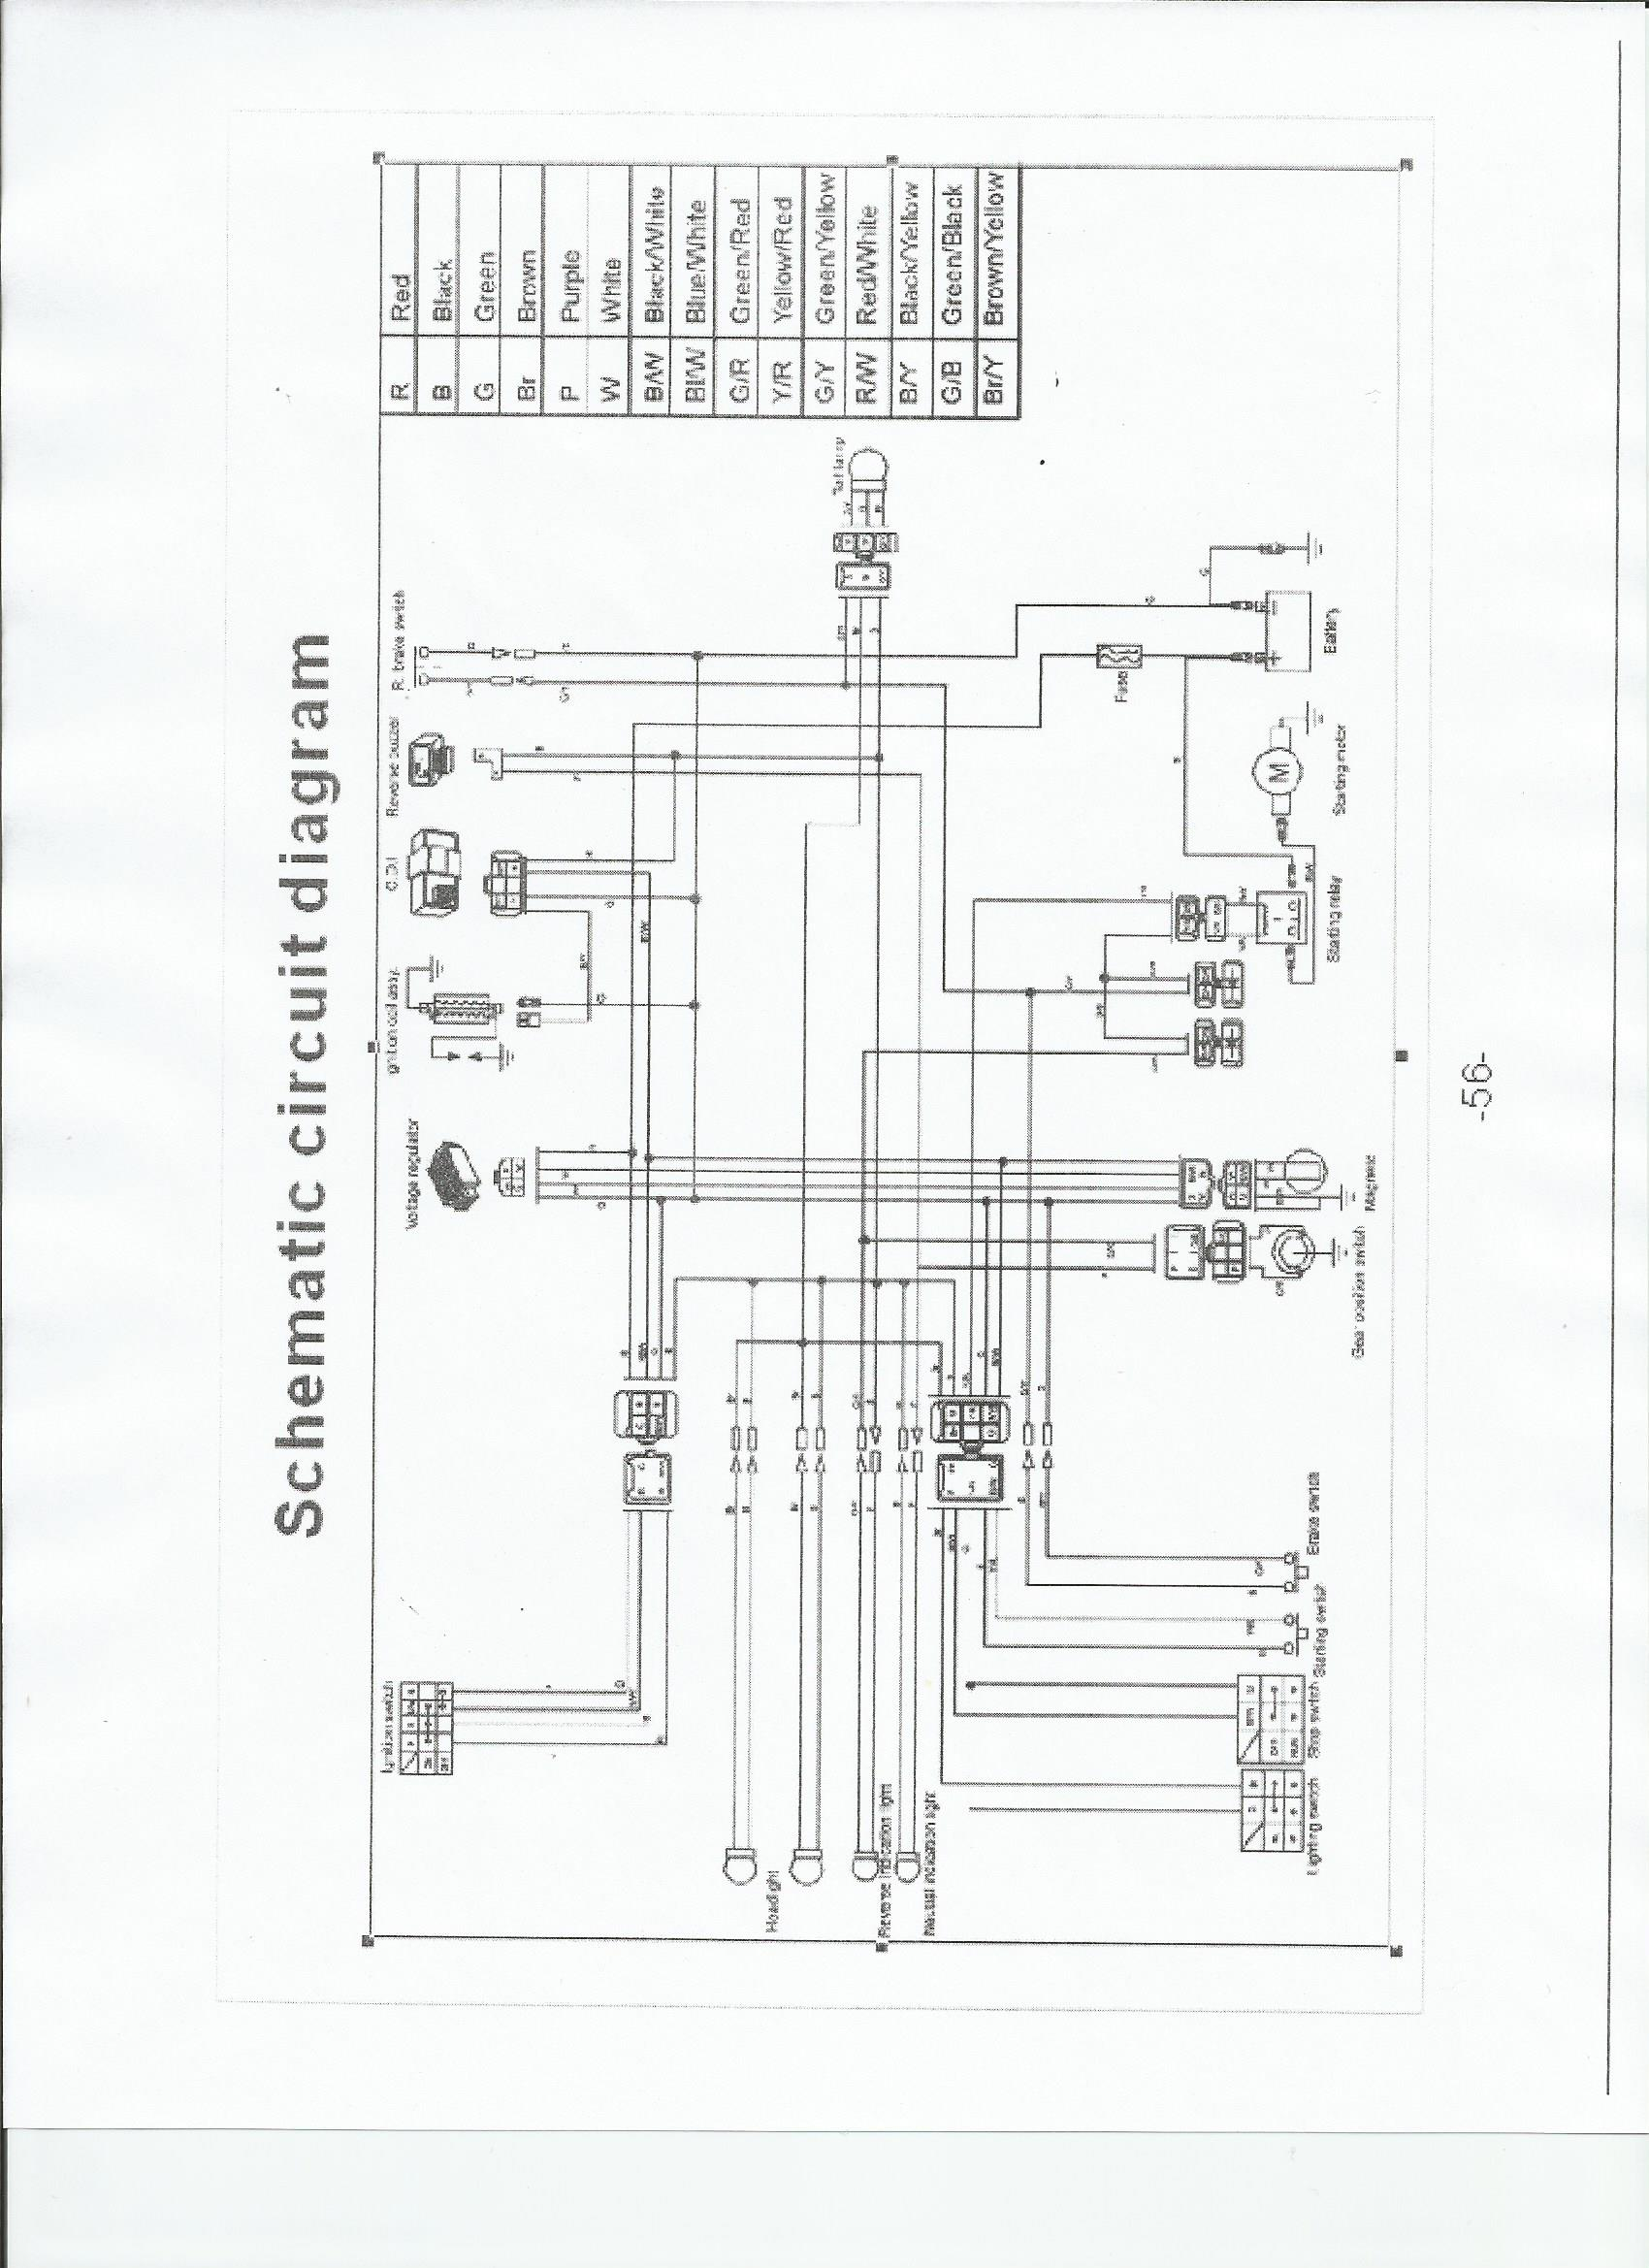 hight resolution of taotao mini and youth atv wiring schematic familygokarts support atv630 wiring diagram atv wiring diagram